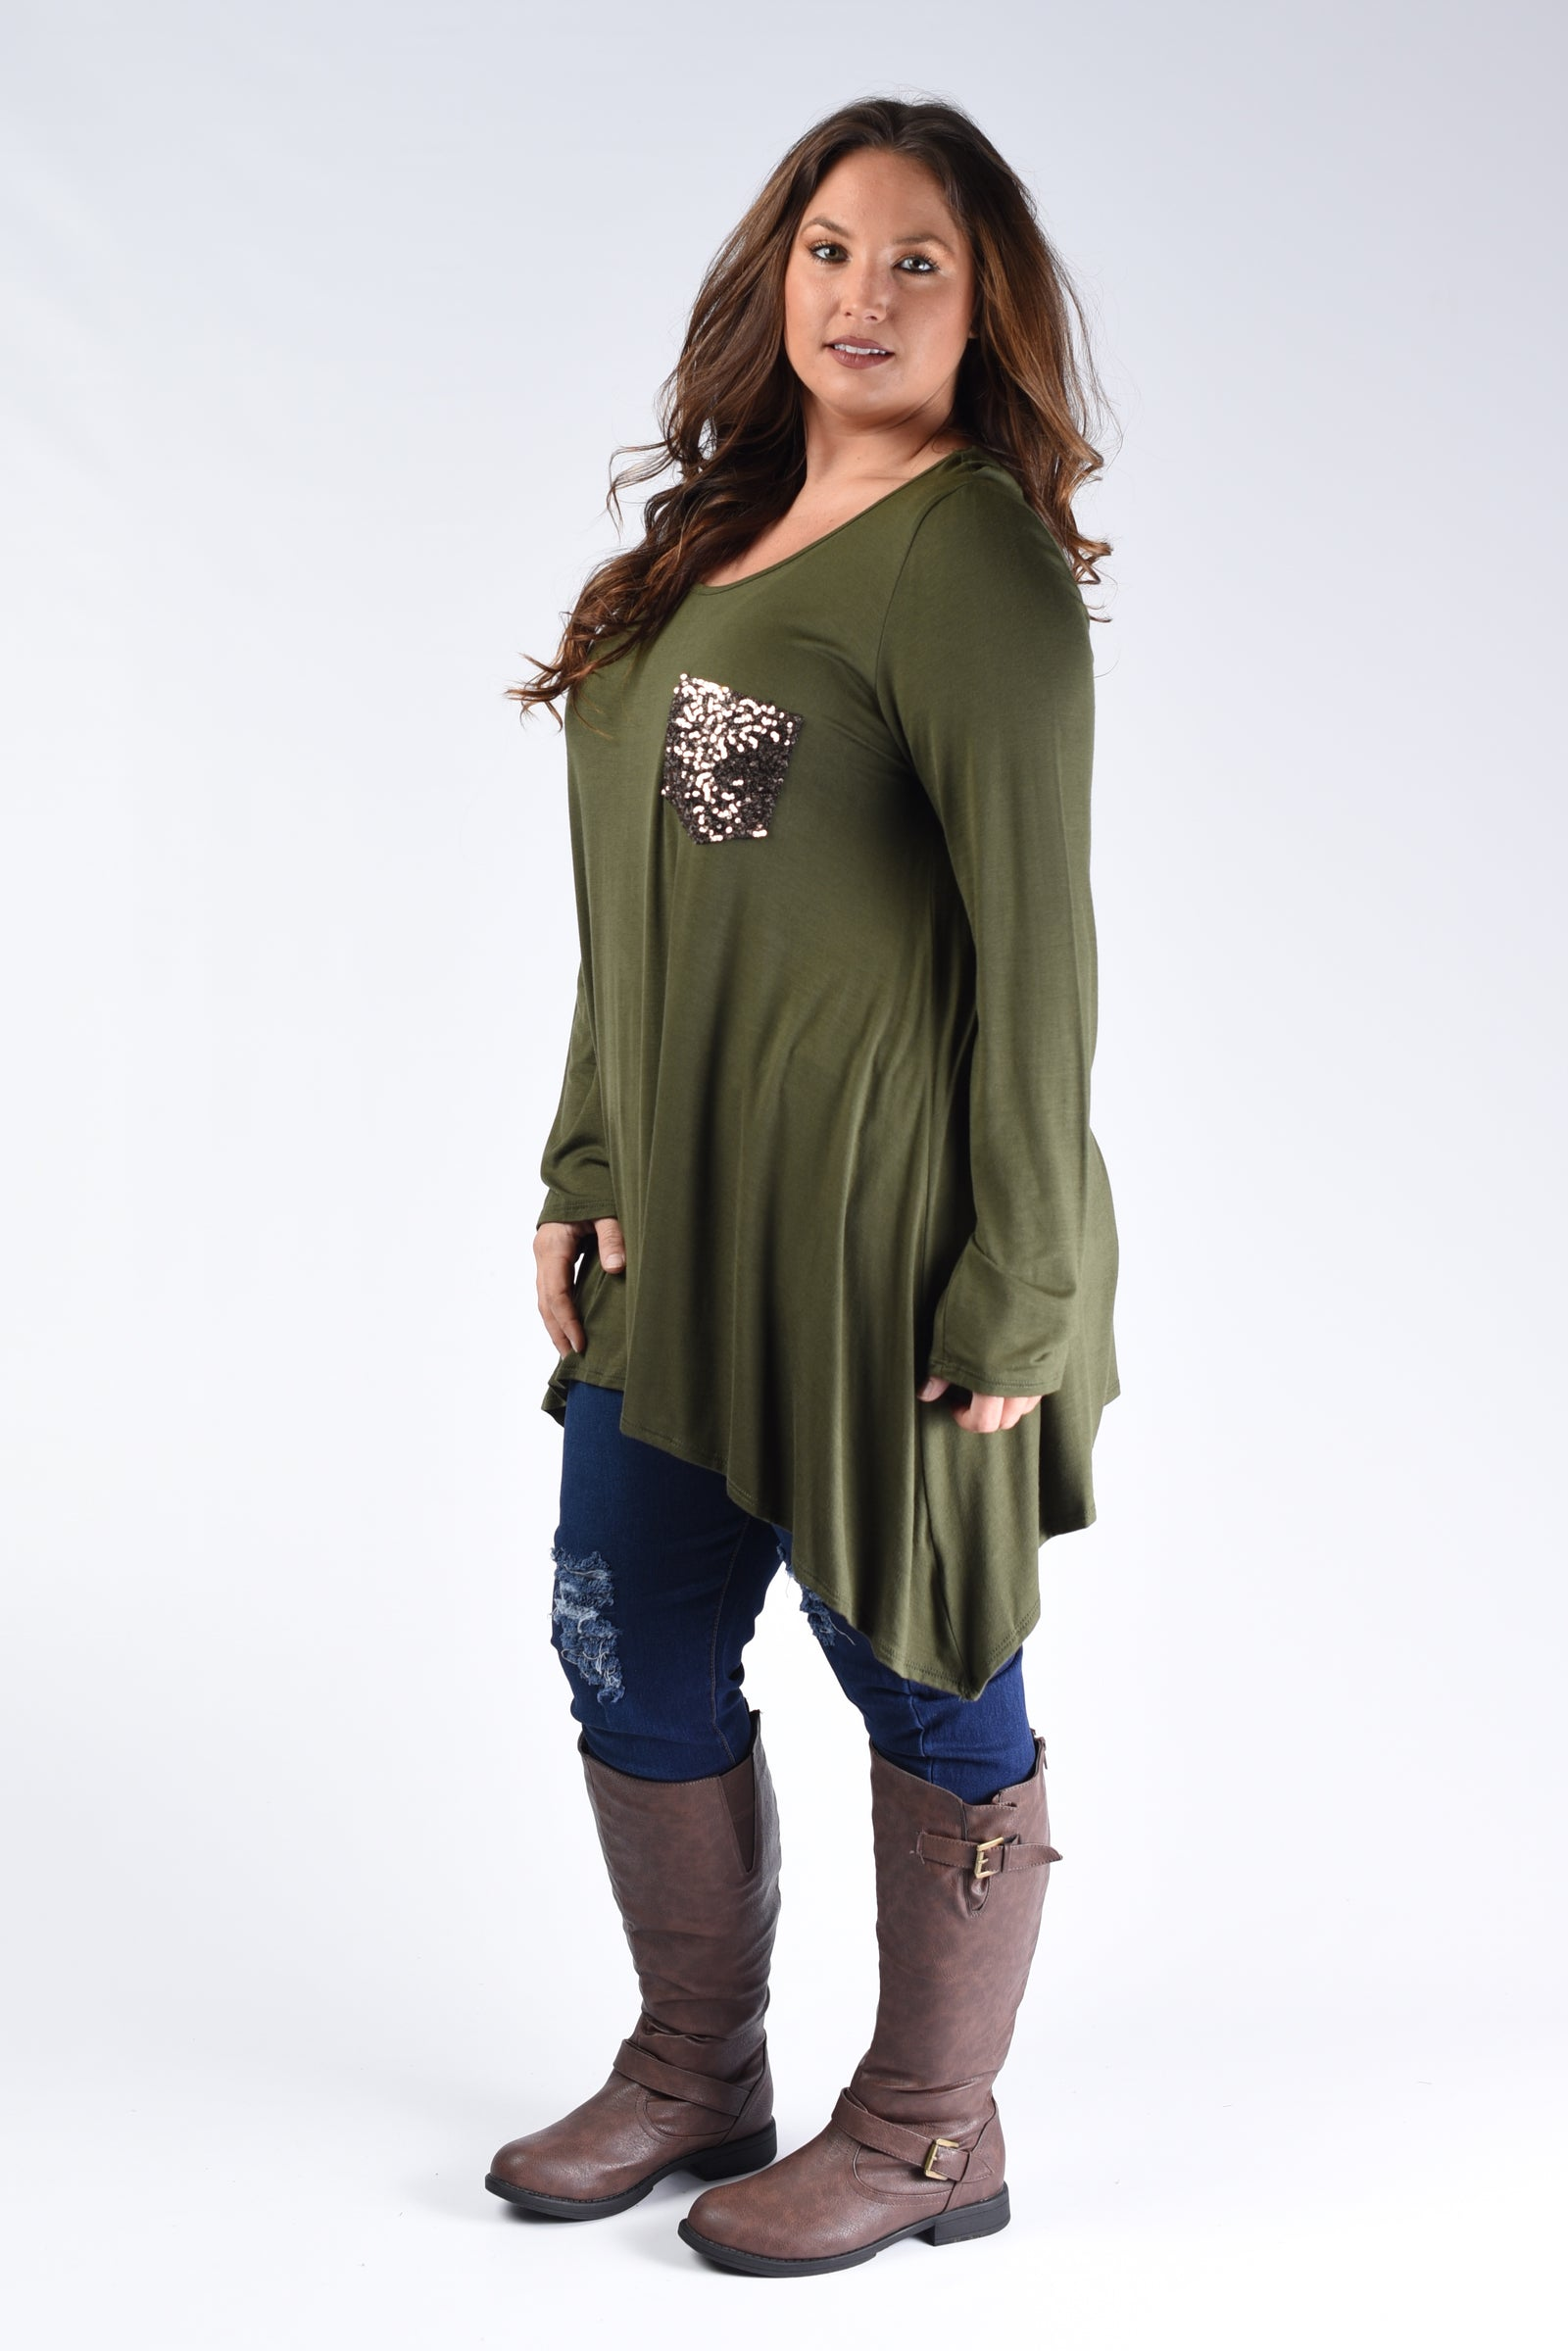 Olive Sequin Pocket Top - www.mycurvystore.com - Curvy Boutique - Plus Size